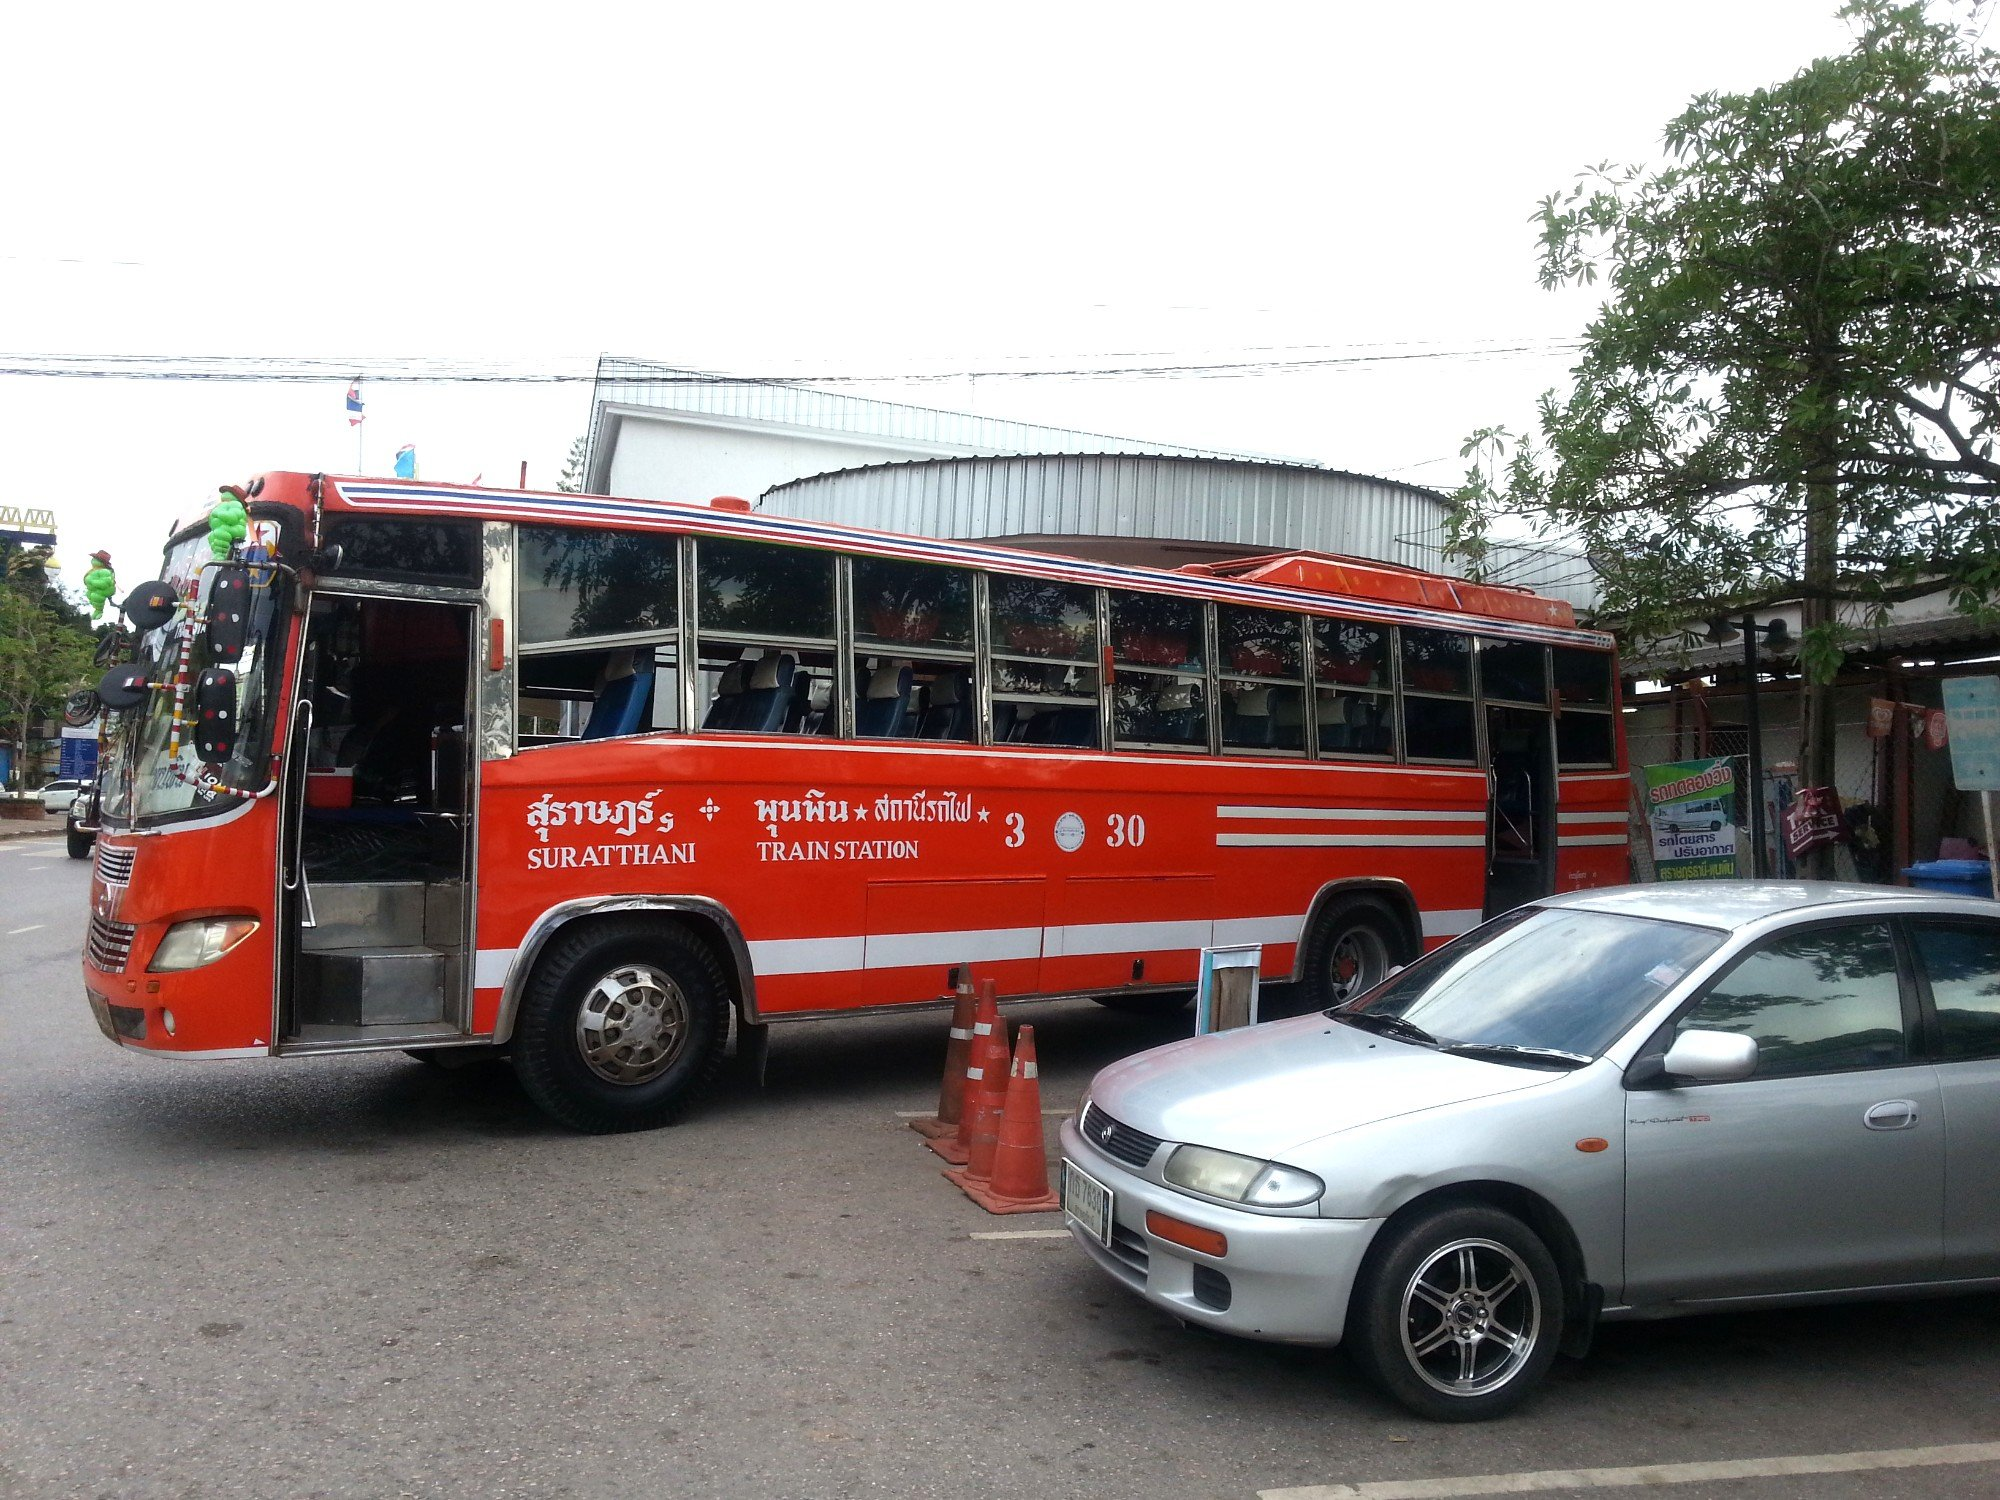 Bus at Surat Thani Train Station